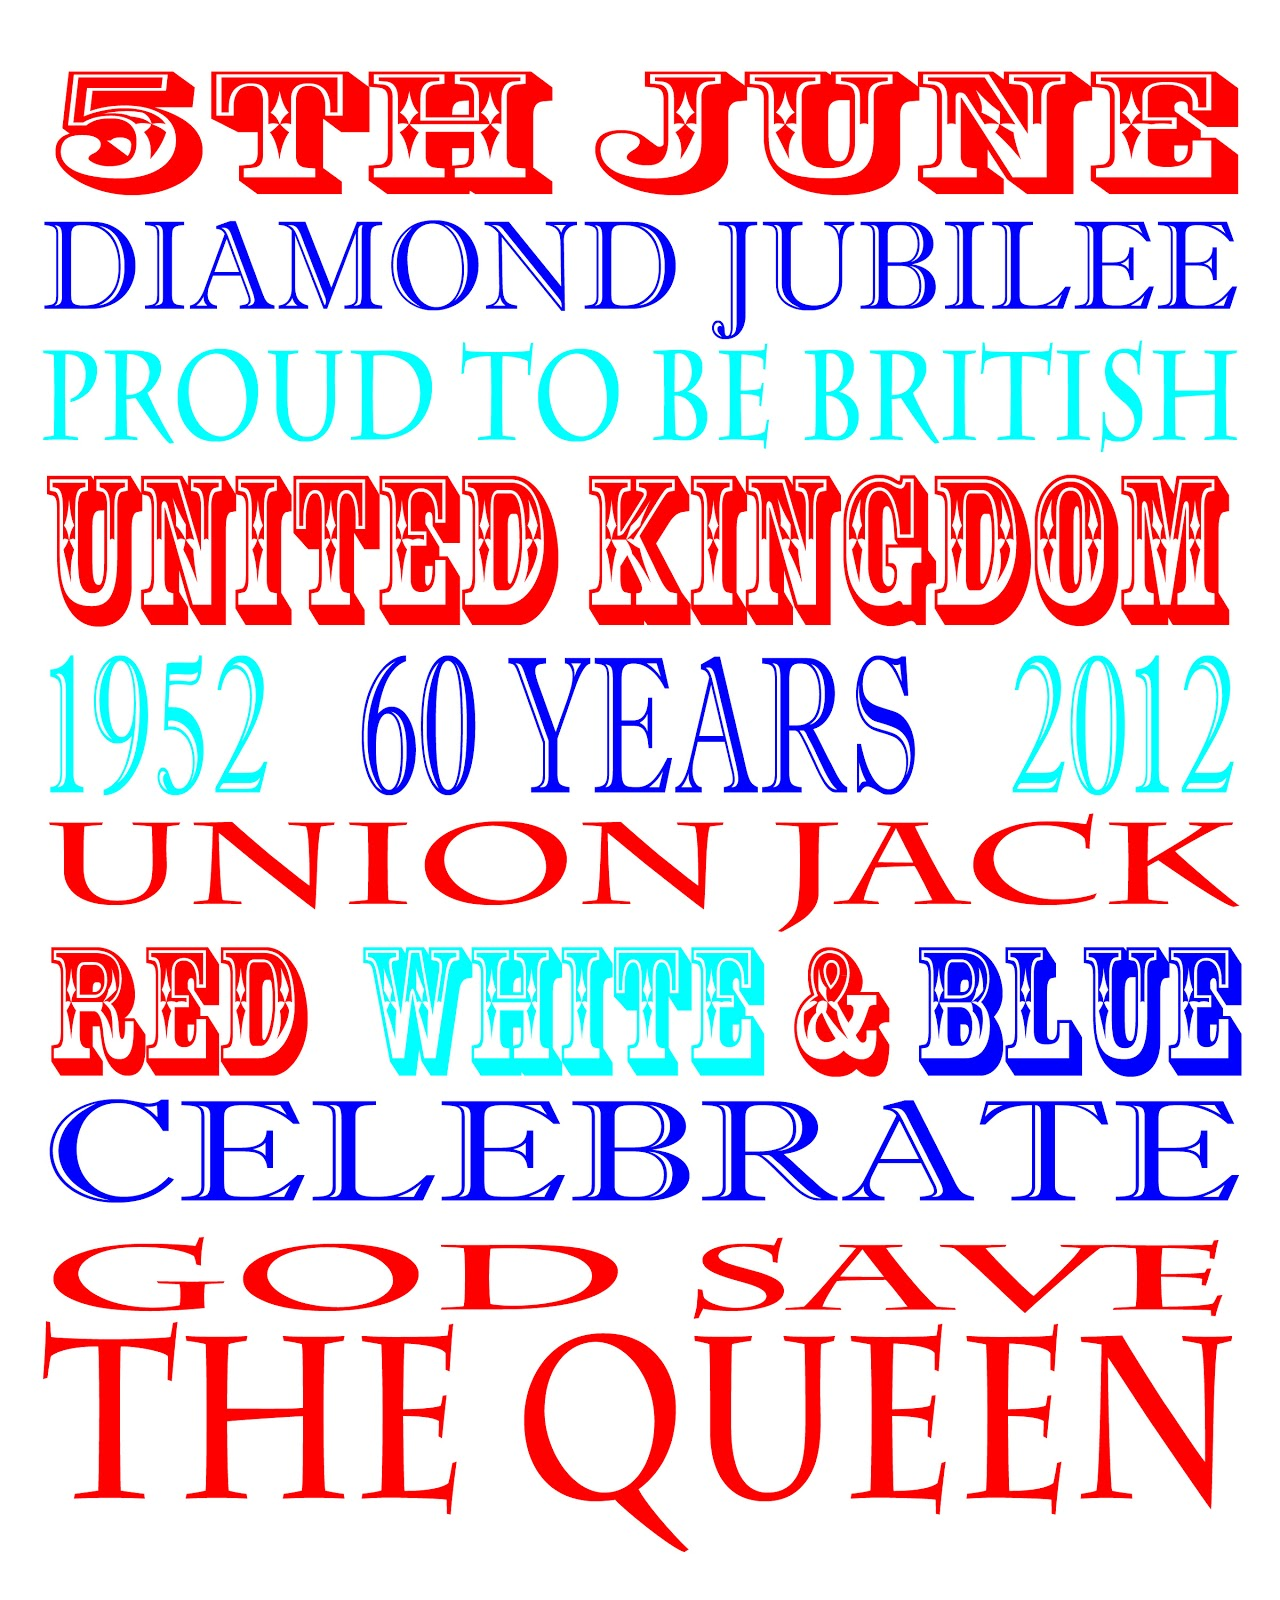 yvonne byatt u0027s family fun queen u0027s diamond jubilee ideas